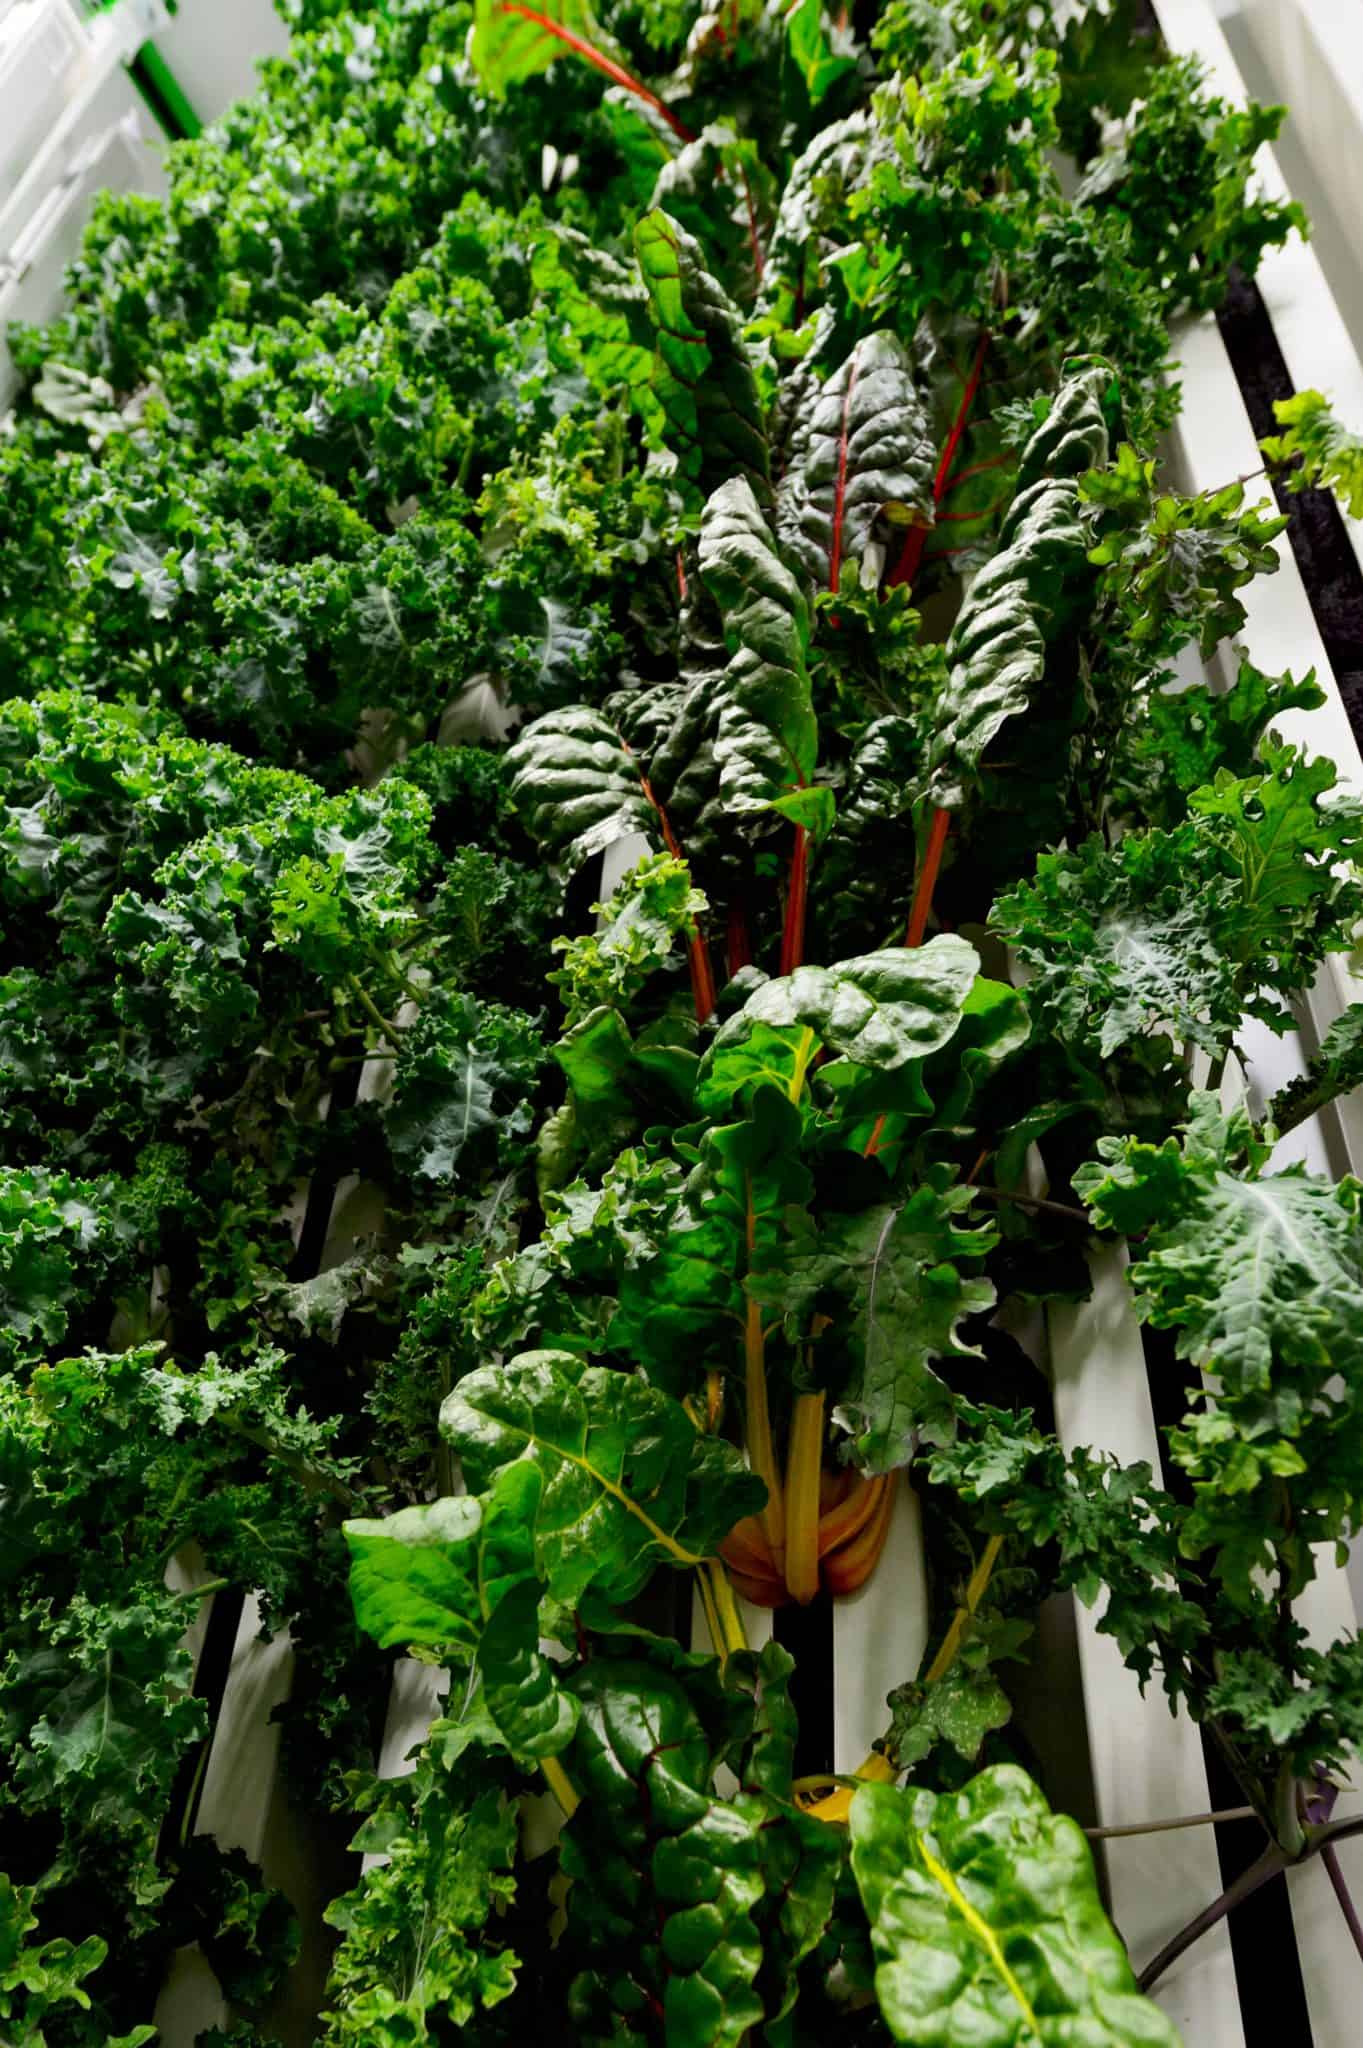 Looking up at a wall of kale and swiss chard inside NuLeaf Farm